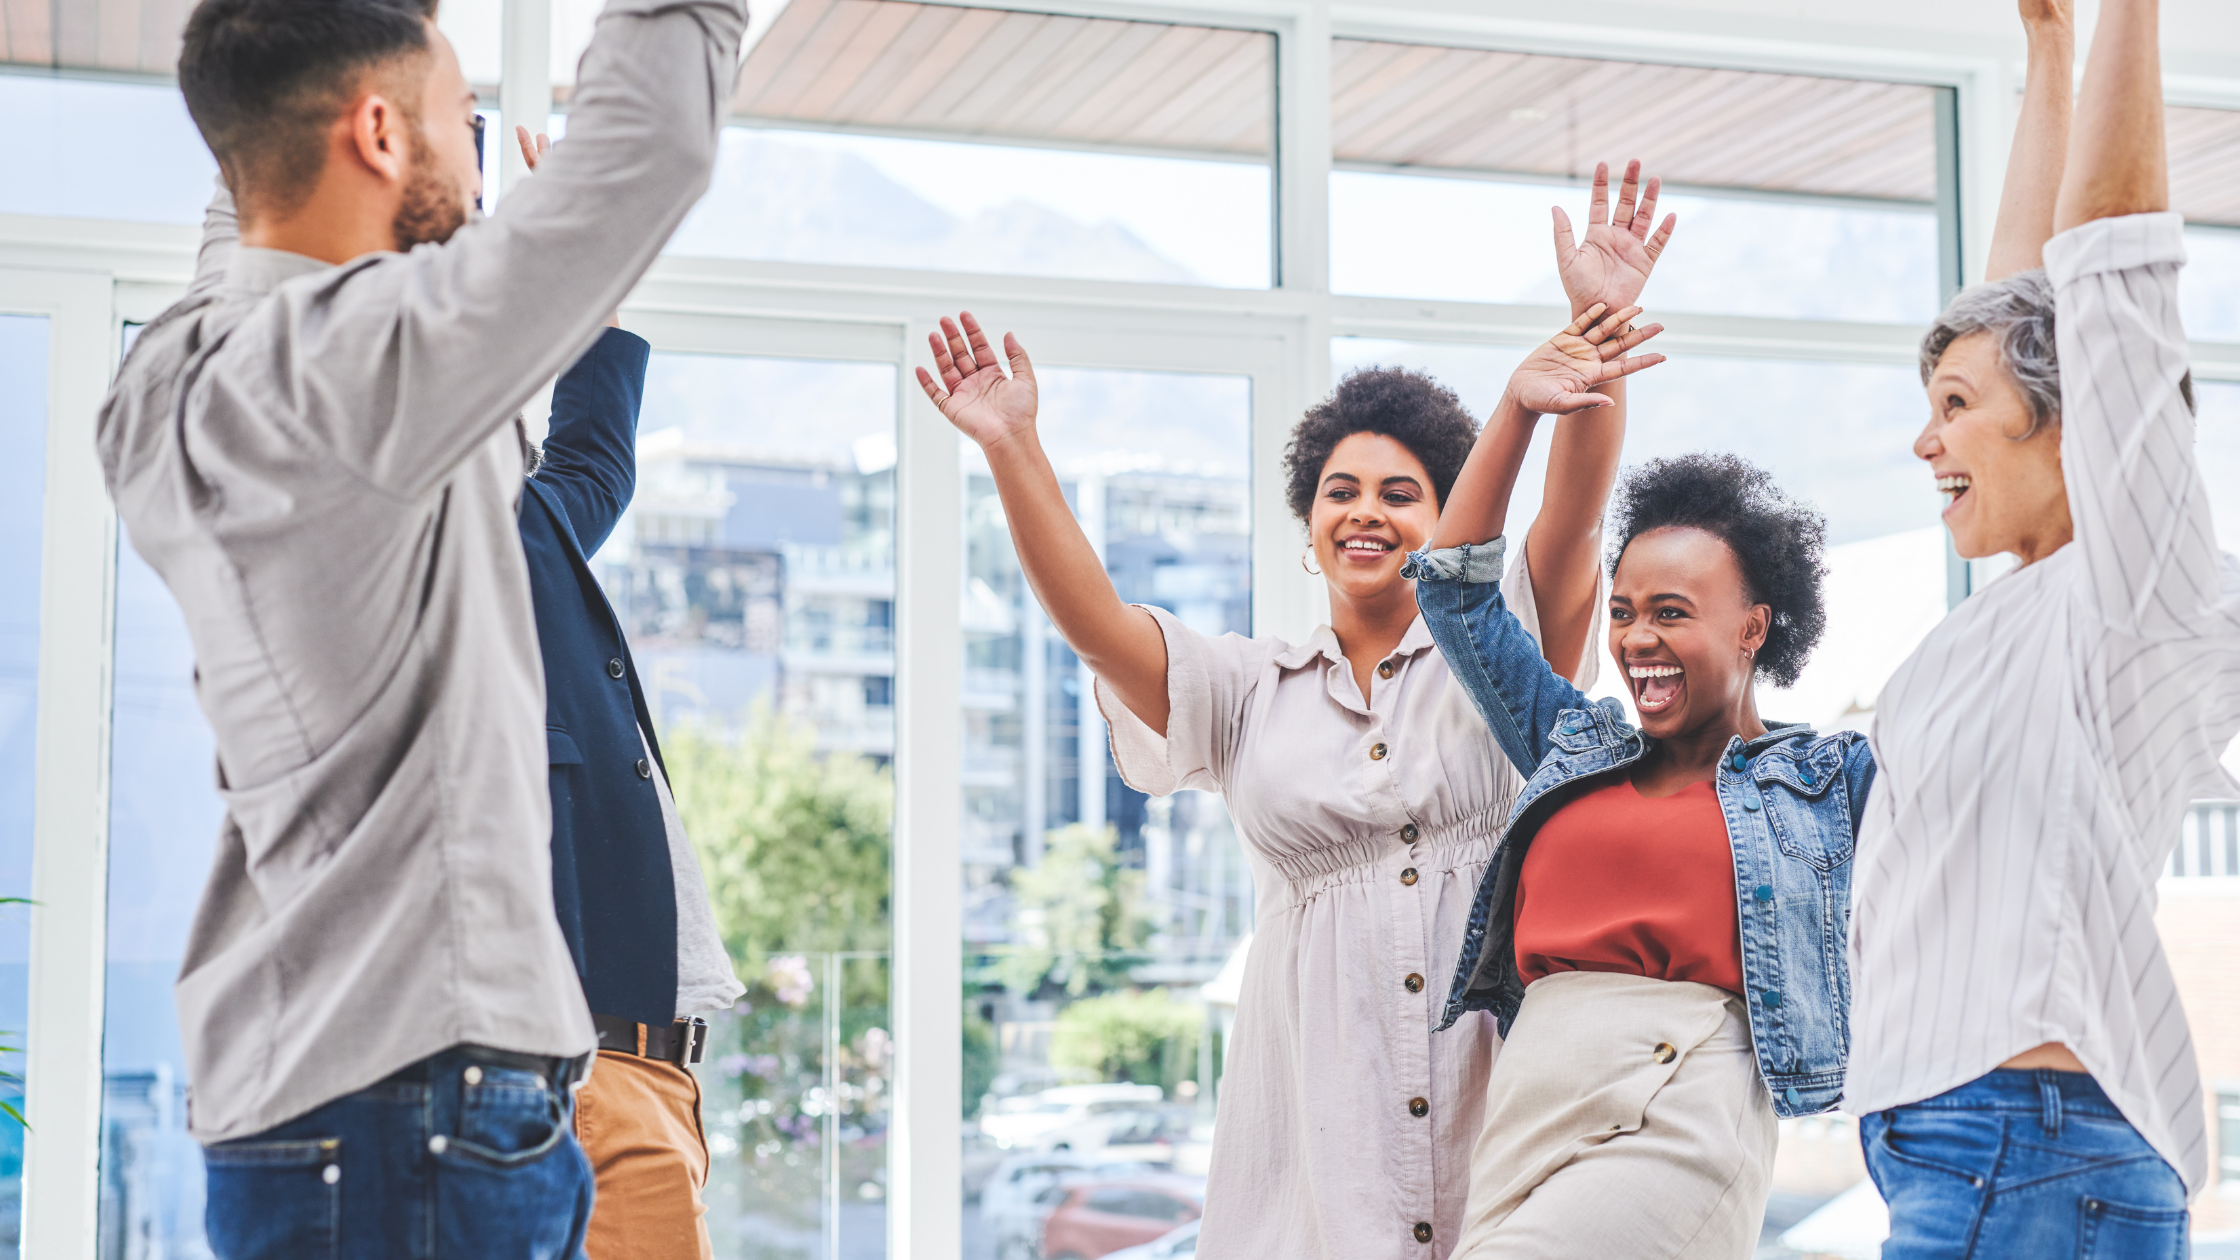 4 easy ways to improve office morale